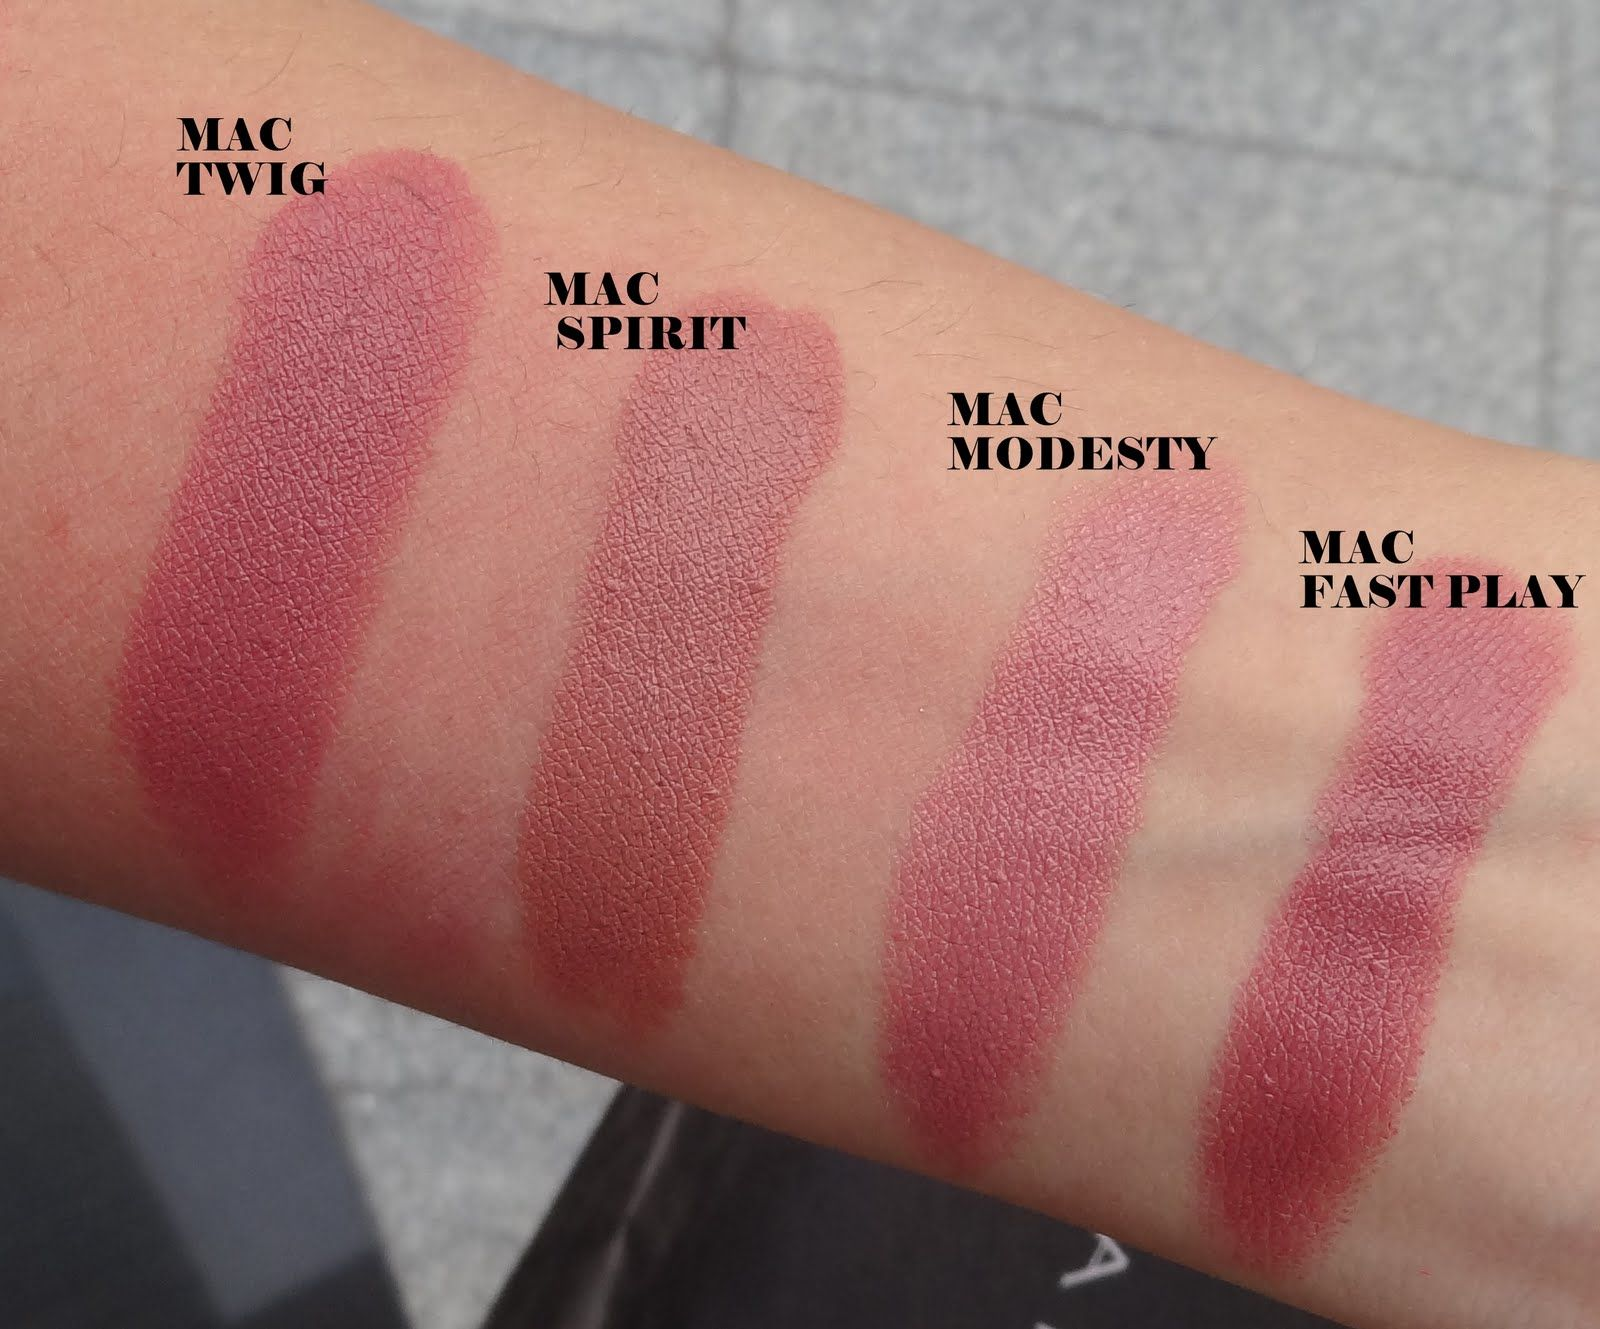 Mac Lipstick Swatches: Twig, Spirit, Modesty, Fast Play | Hair and ...